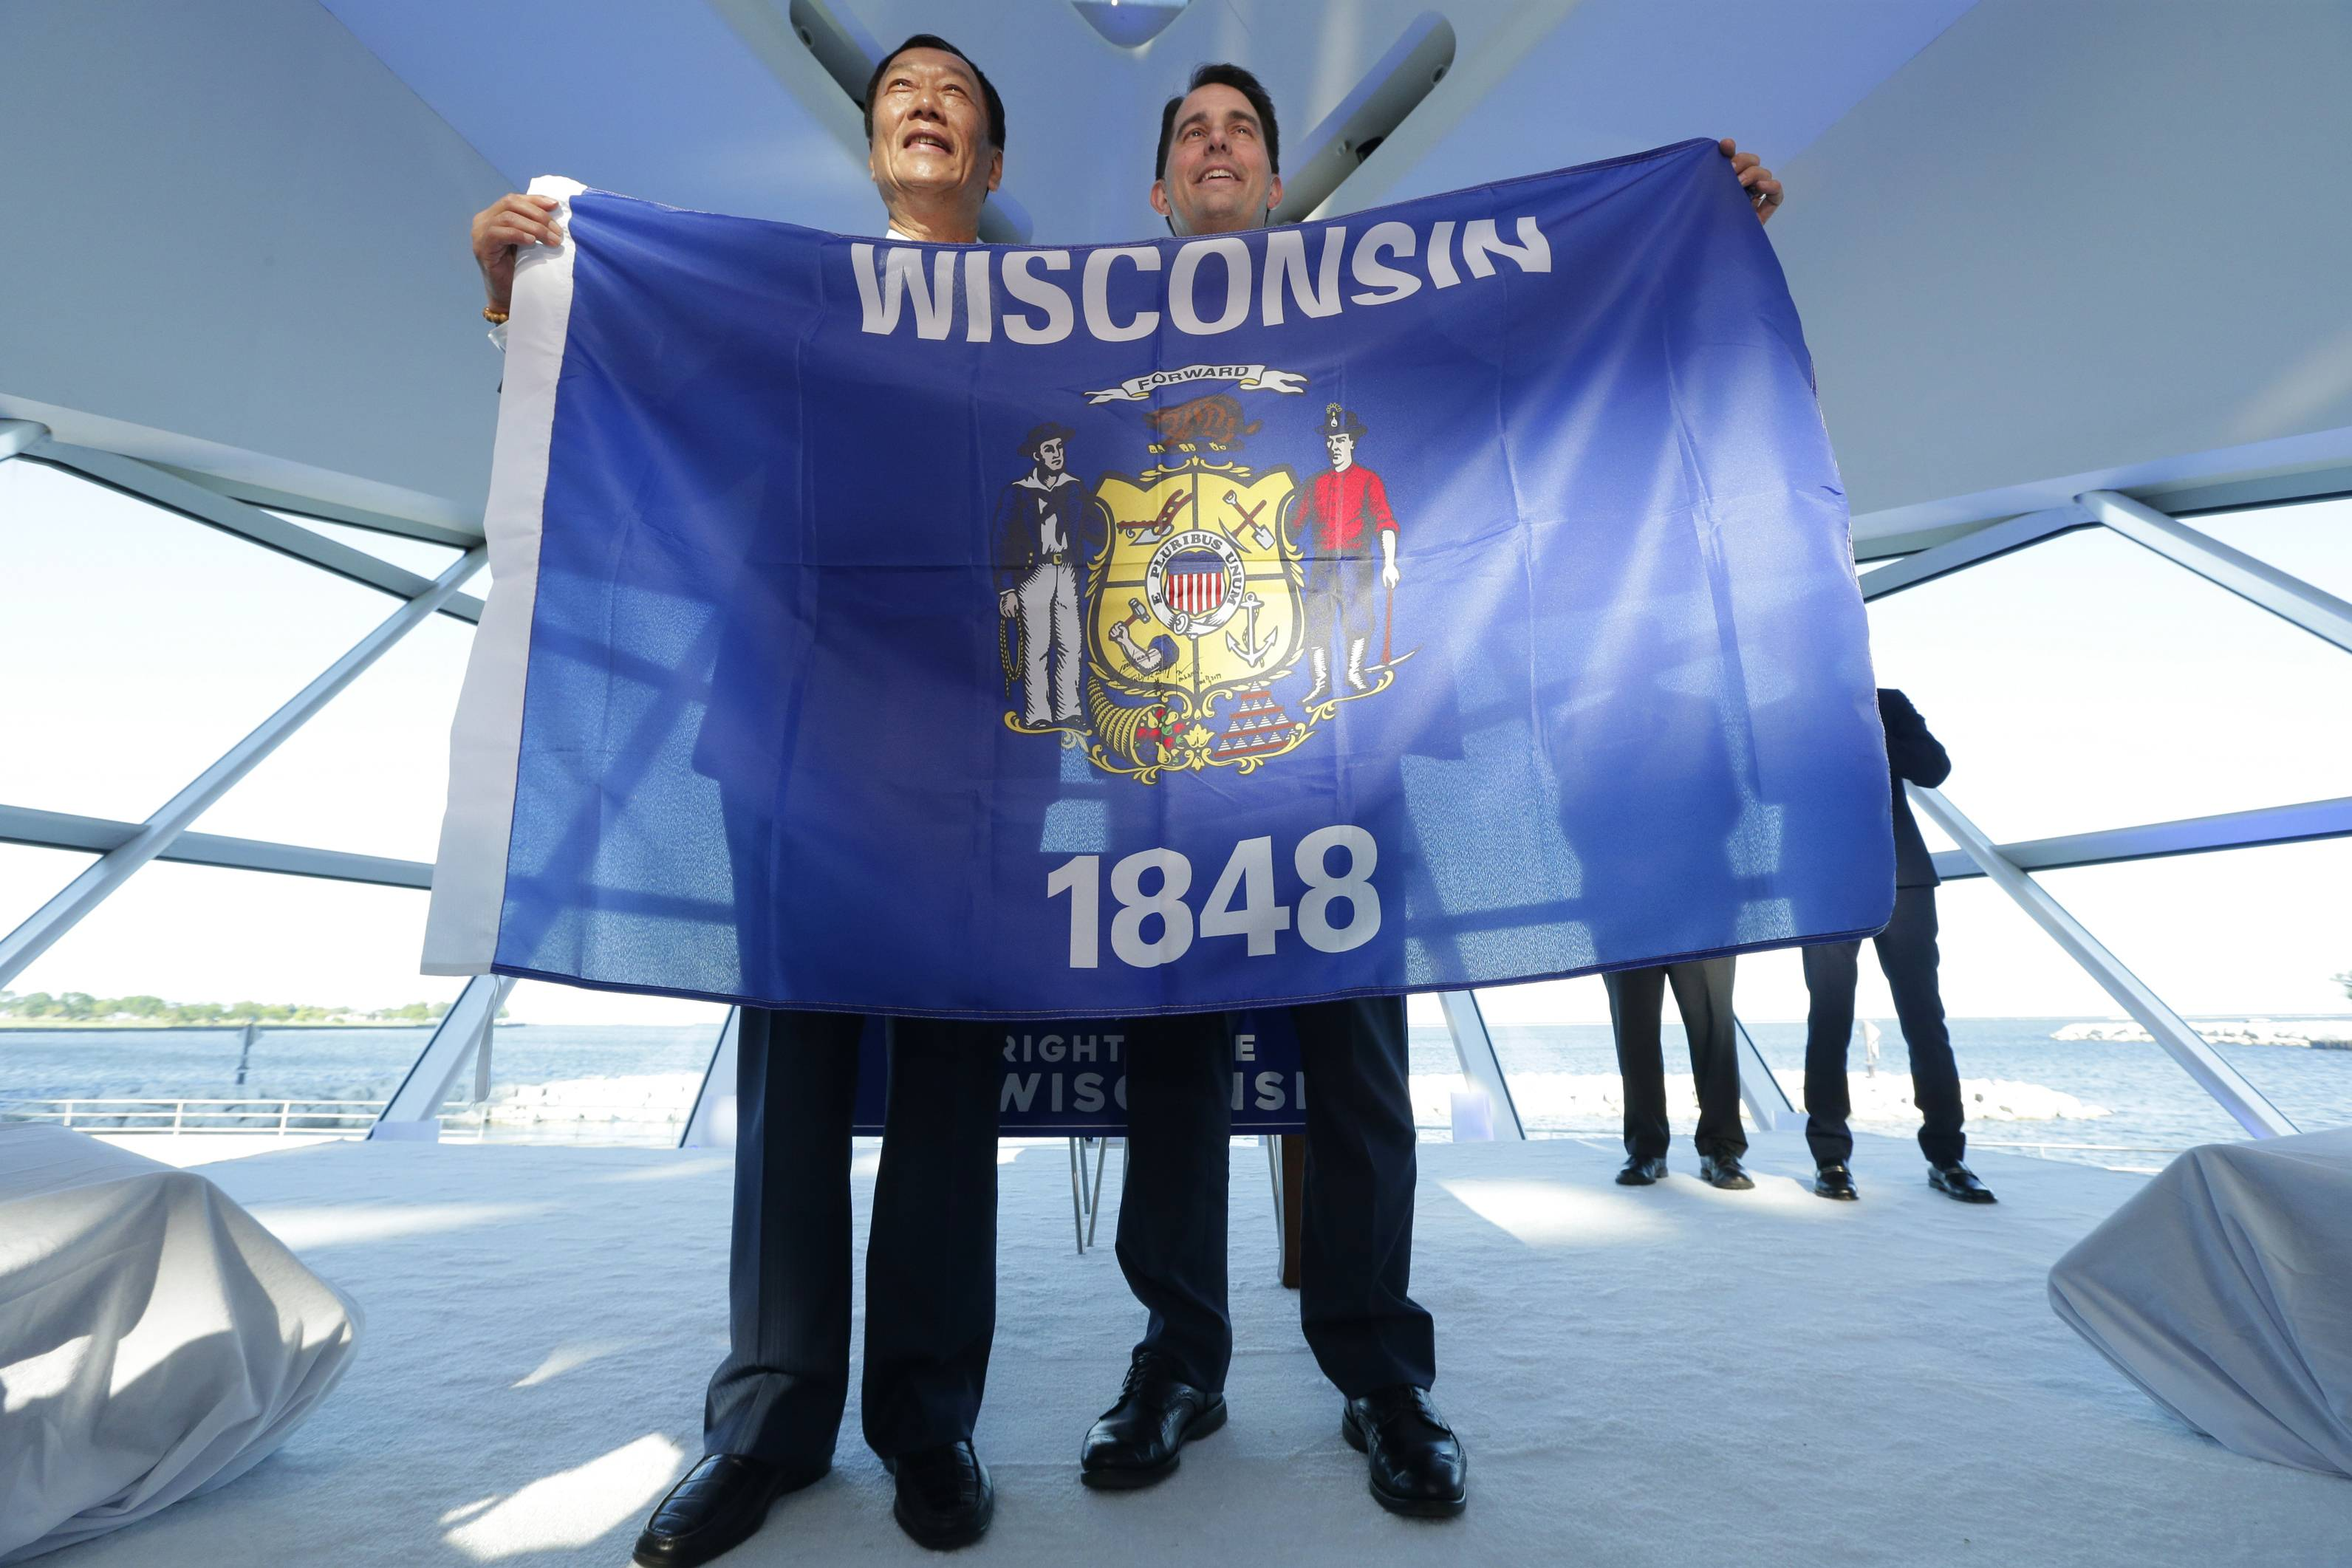 Foxconn Chairman Terry Gou, left, and Gov. Scott Walker hold the Wisconsin flag to celebrate their $10 billion investment to build a display panel plant in Wisconsin. The company's interest in building has triggered a debate about government efforts to lure companies via tax breaks, betting the public will benefit in the long run from spikes in economic activity.